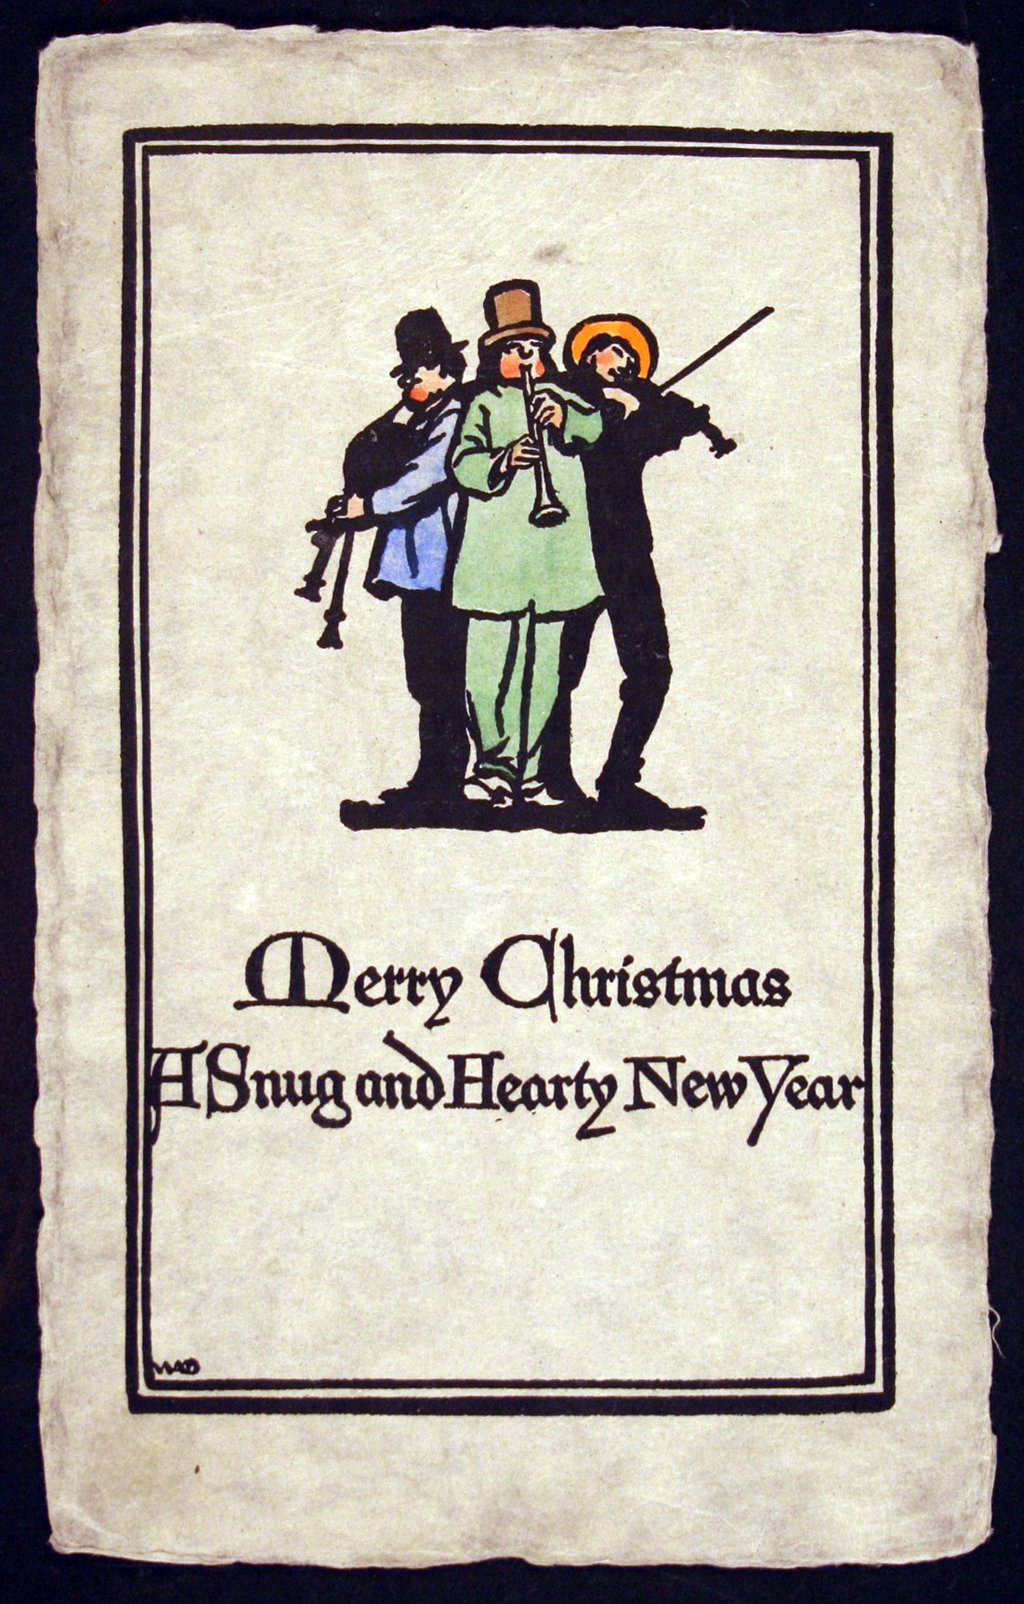 Merry Christmas. Christmas card designed, illustrated and iettered bu W.a. Dwiggins for Willis a. Boughton, 1910.